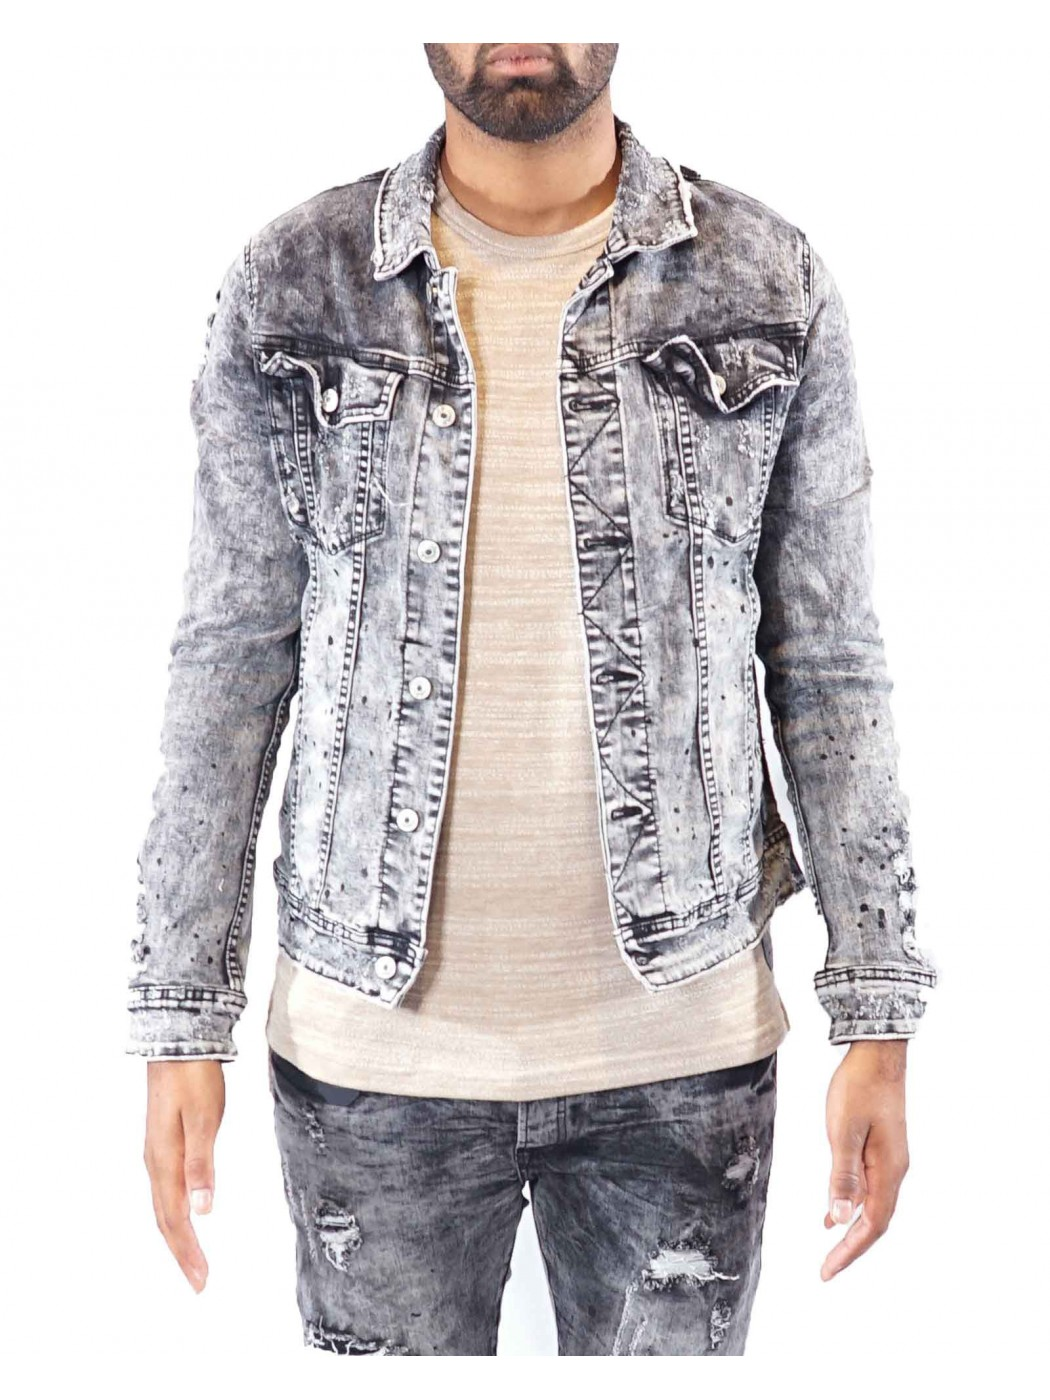 9a35ecaeb0e31 Men's Denim Jacket Project X Paris